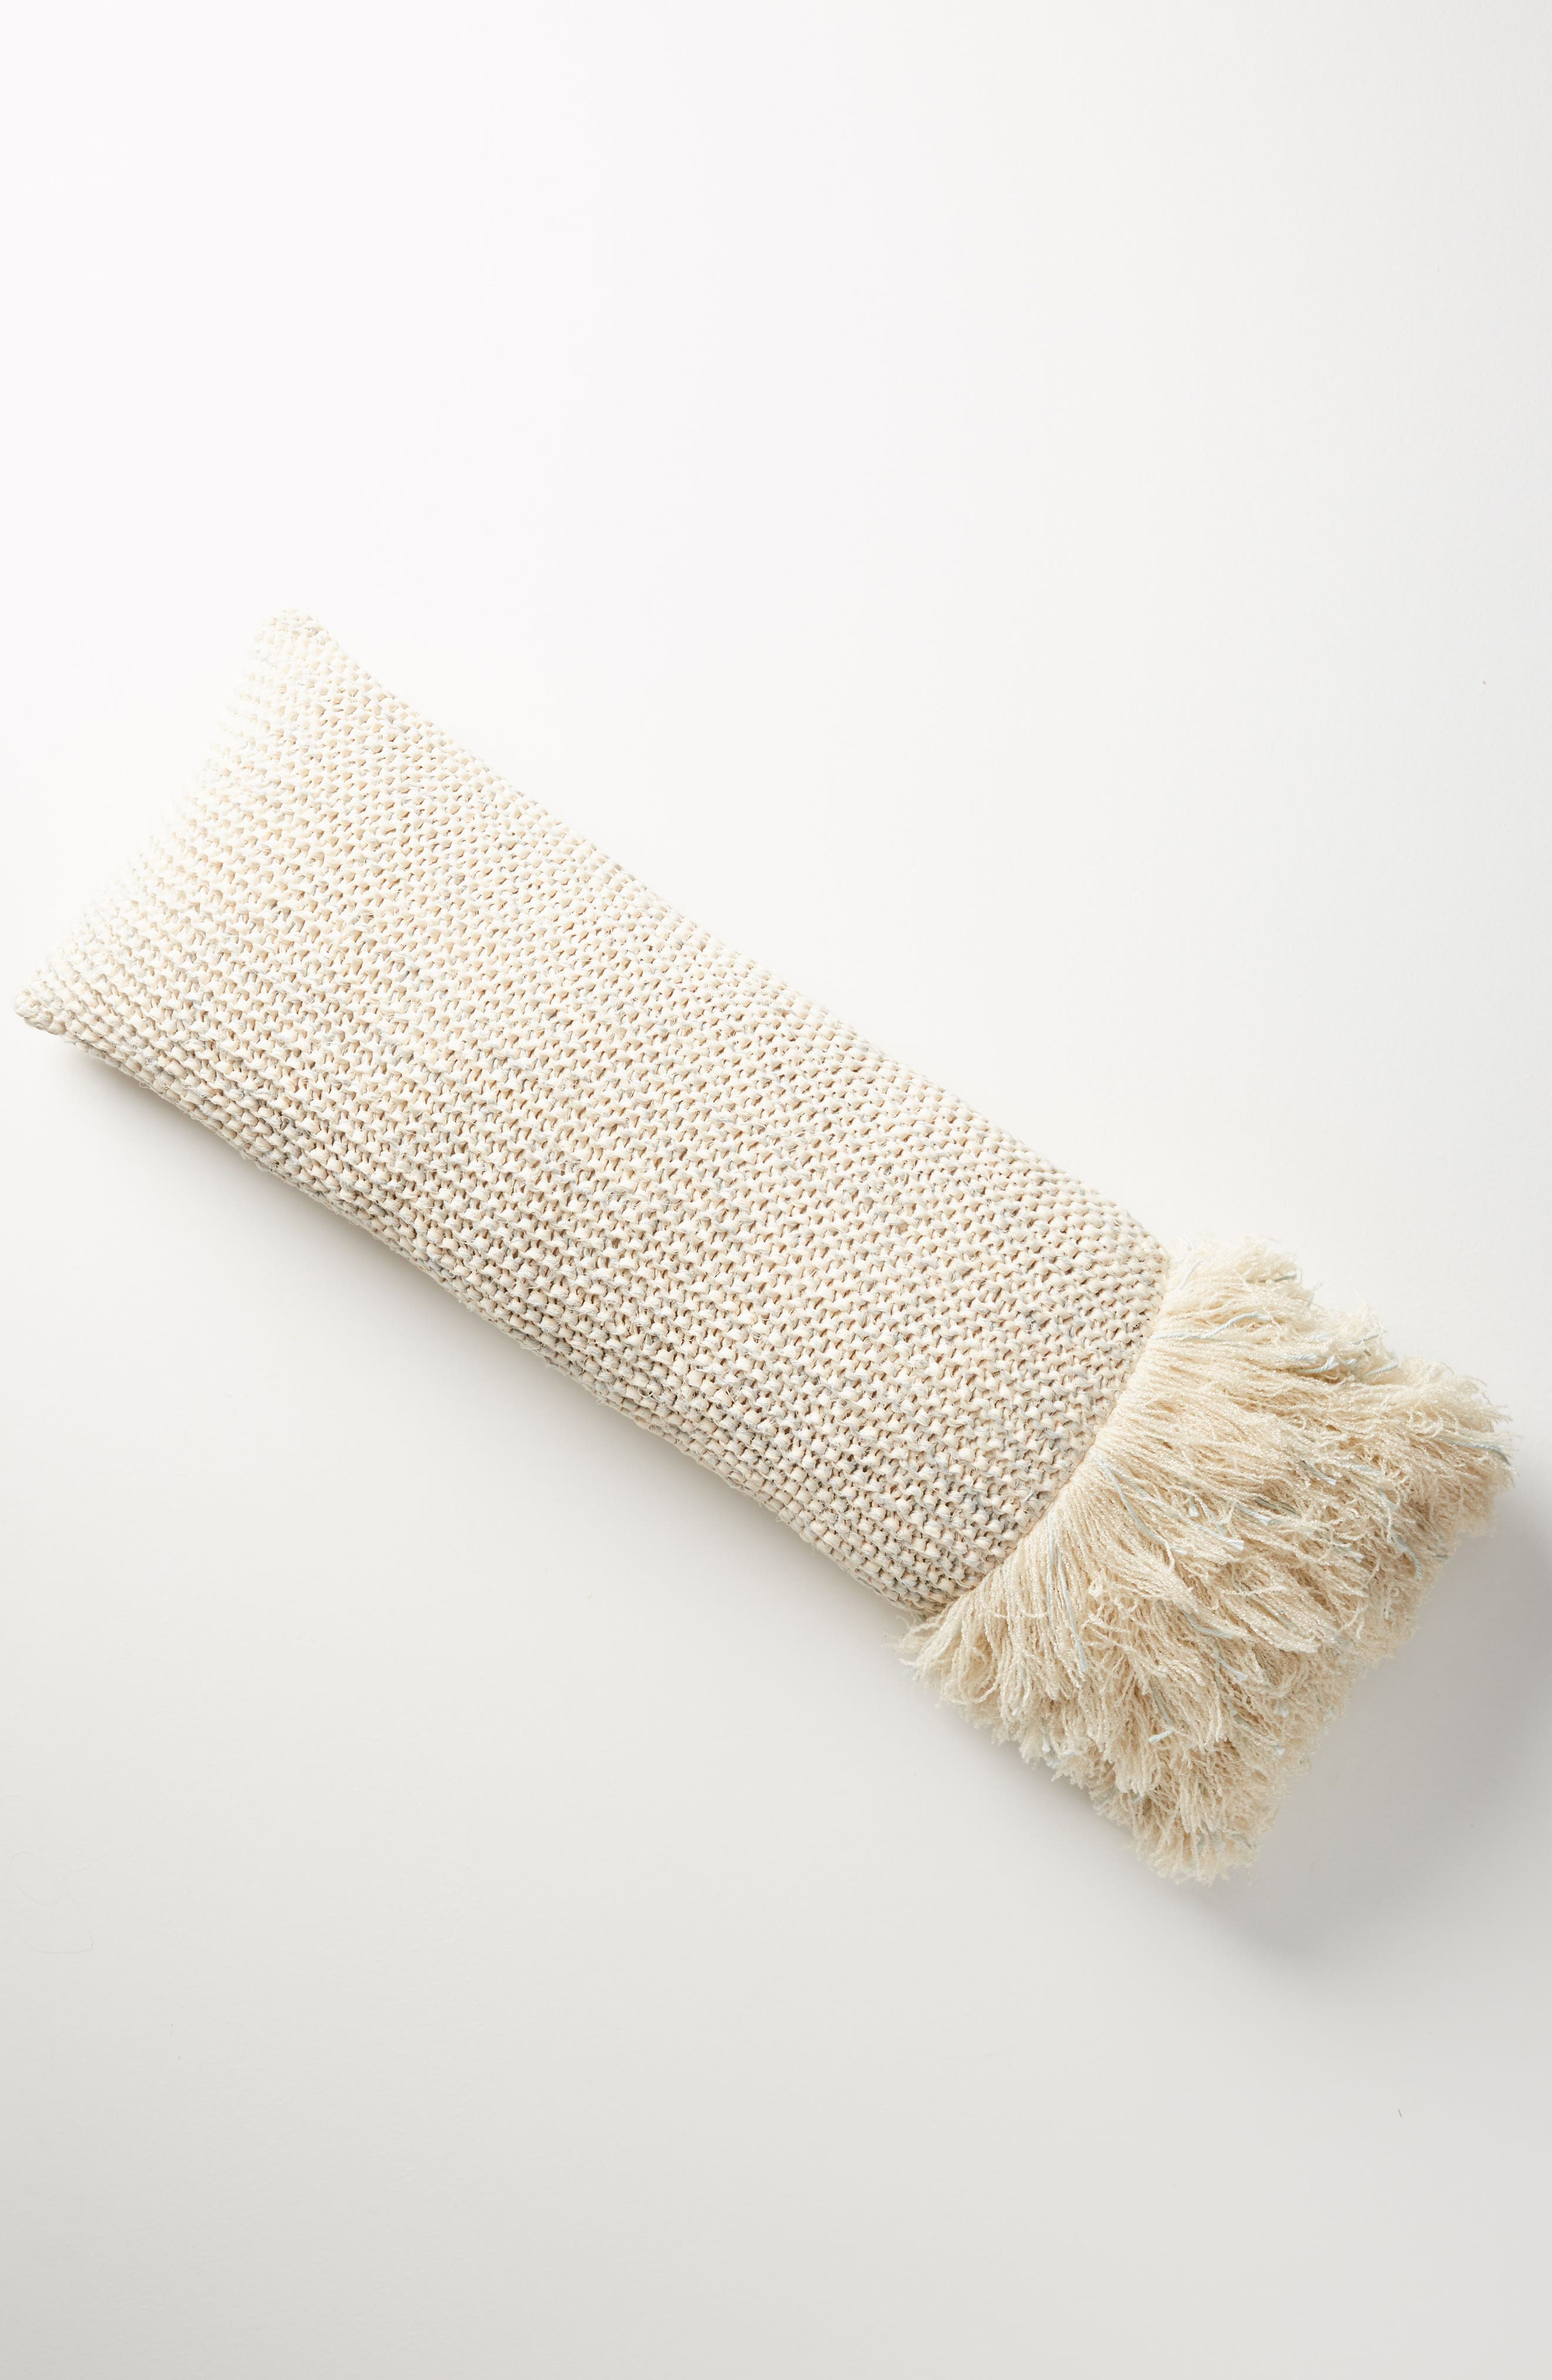 Fringed Waffleknit Pillow,                             Alternate thumbnail 3, color,